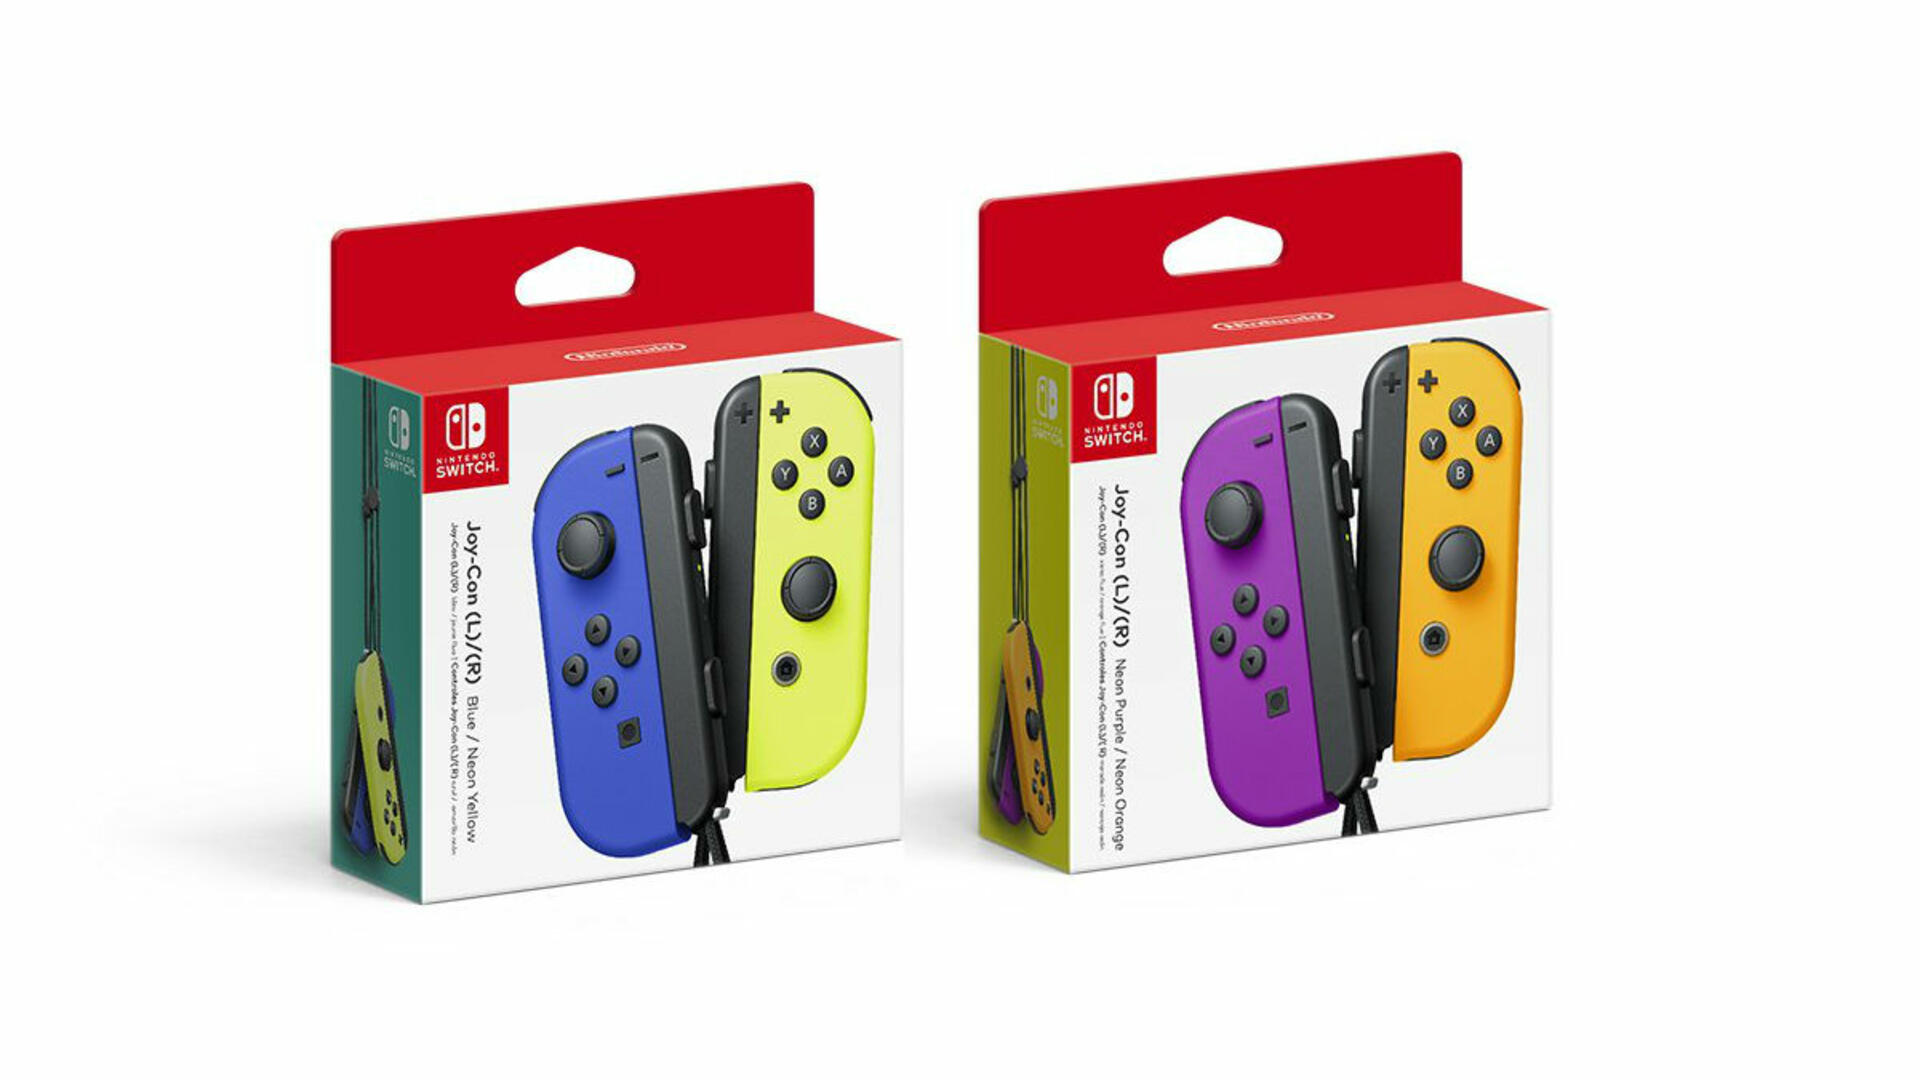 """New Switch Joy-Con Colors are Coming but Fans Wonder if Nintendo's Fixed the Notorious """"Joy-Con Drift"""""""